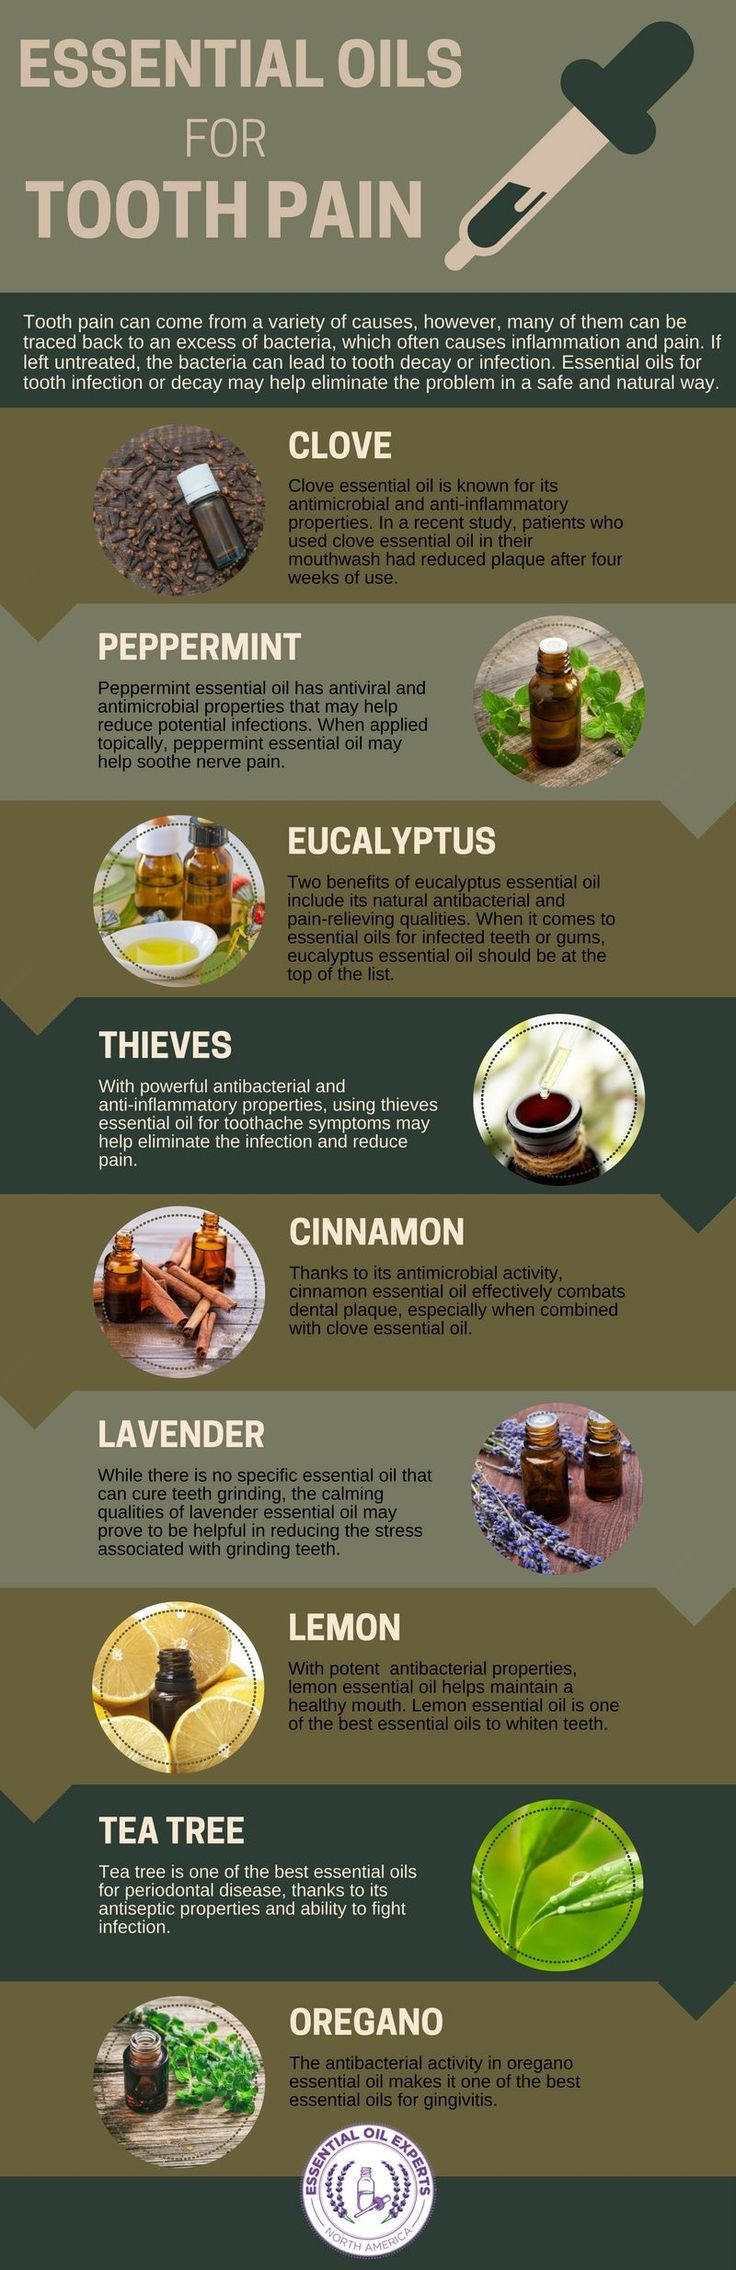 The top essential oils for toothache pain including how to use peppermint oil for toothache relief.